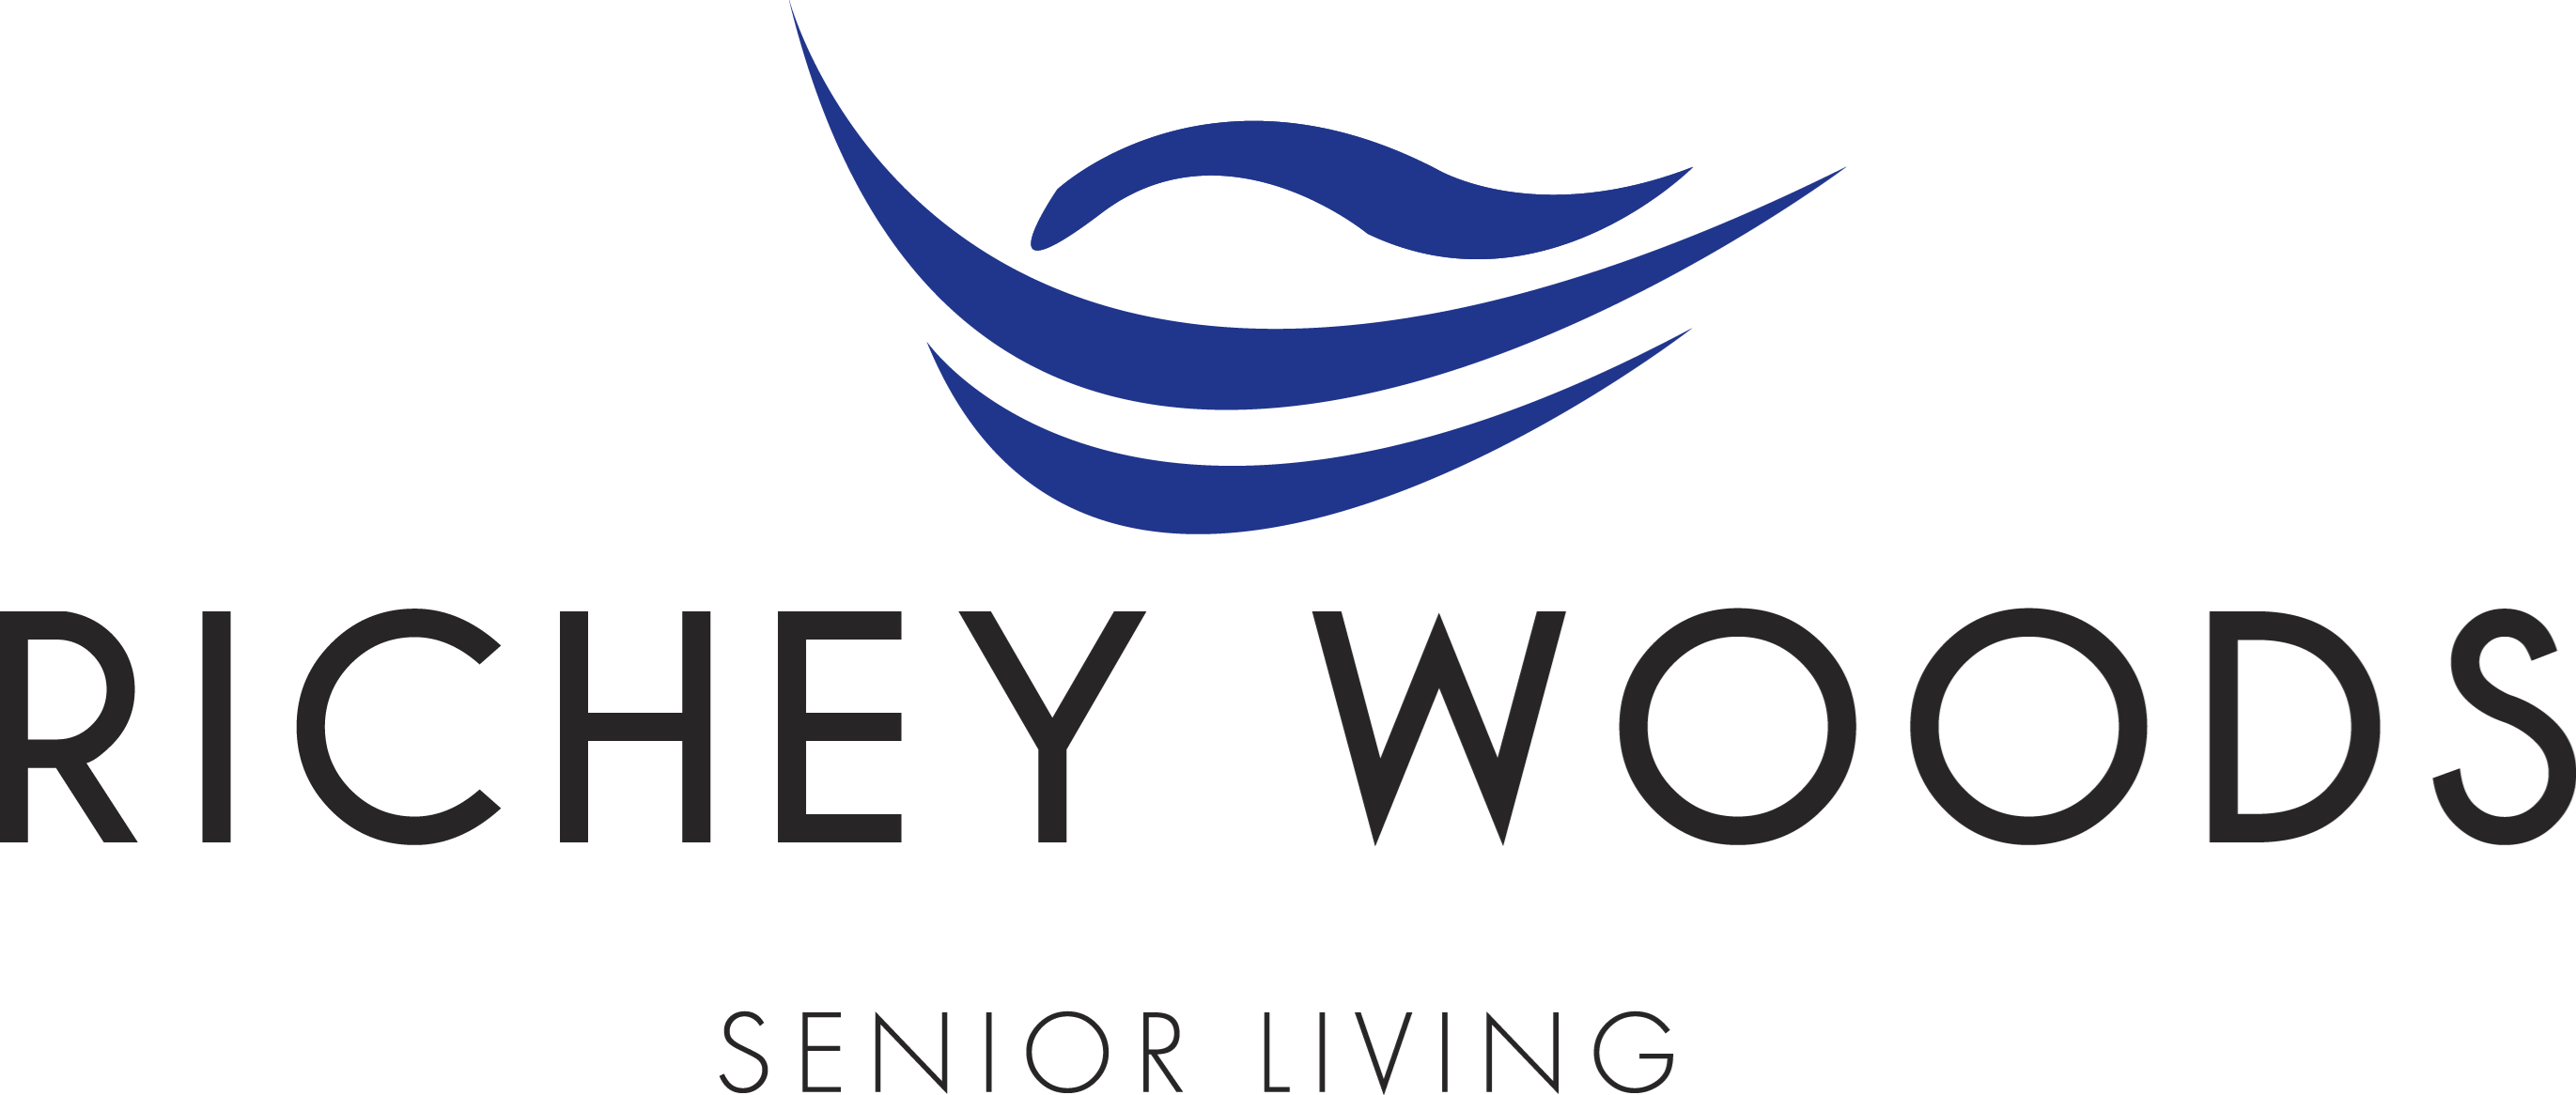 Richey Woods Senior Living Apartments for rent in New Port Richey, FL. Make this community your new home or visit other Concord Rents communities at ConcordRents.com. Logo